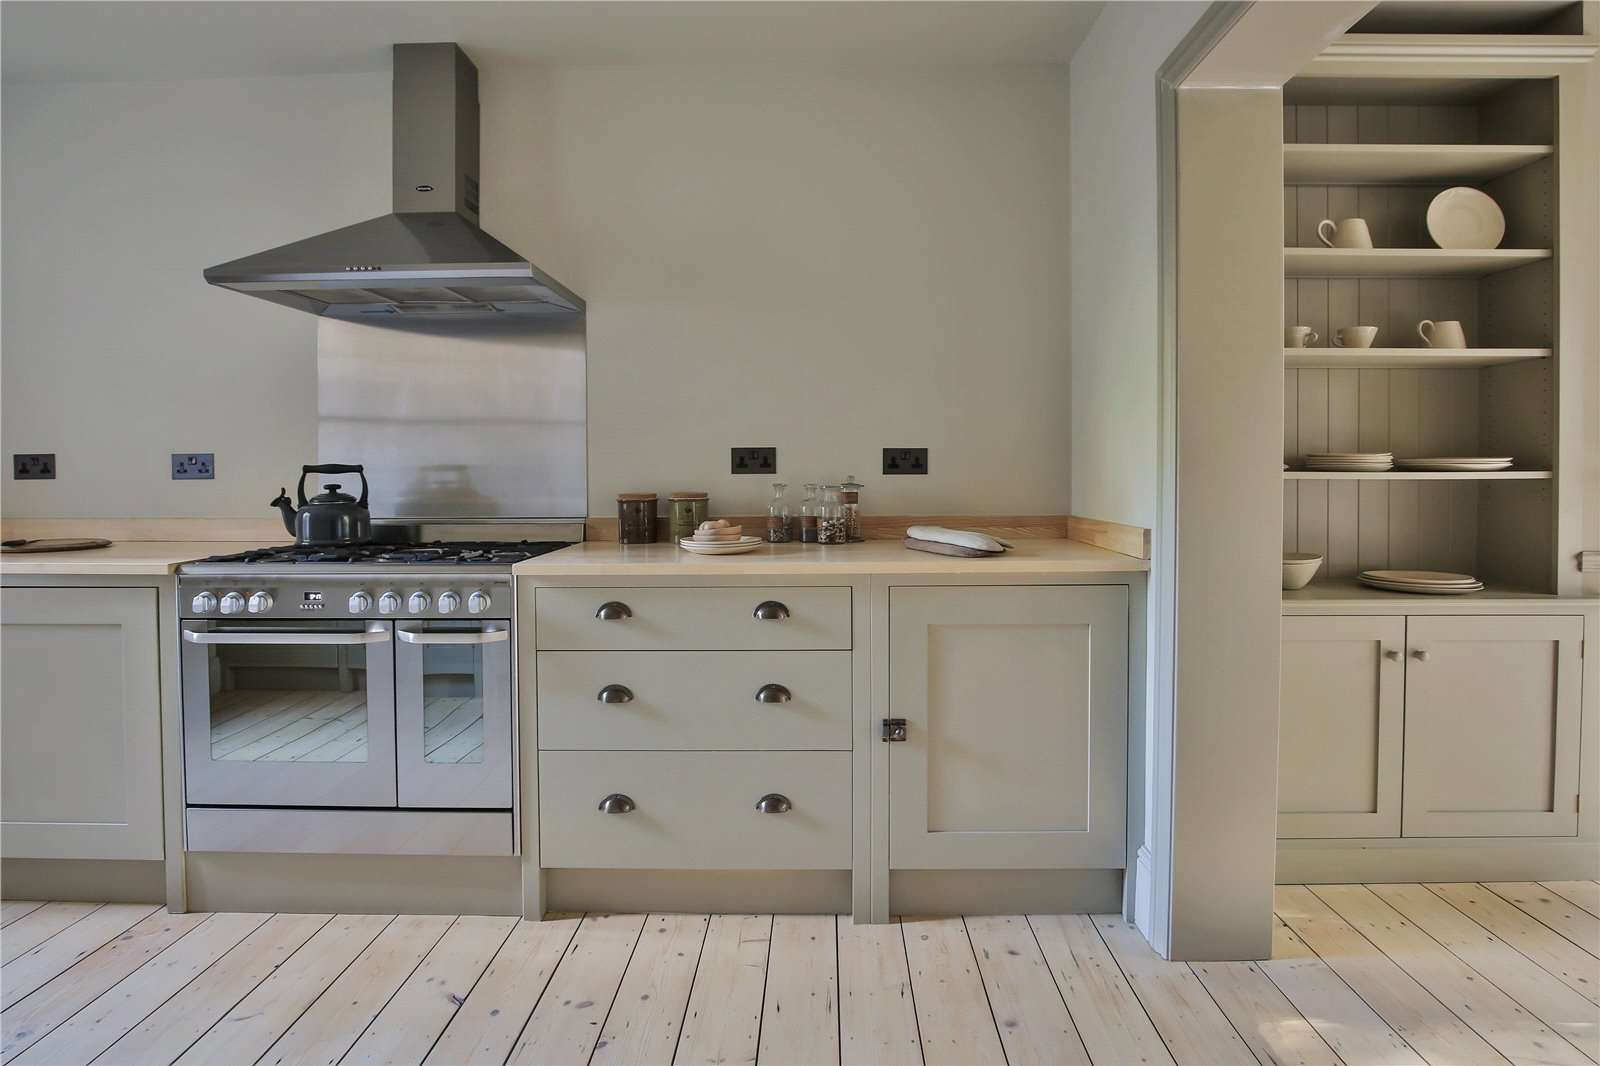 An elegantly-proportioned Victorian house on Woodstock Road in Oxford - Image Gallery 09 - Kitchen